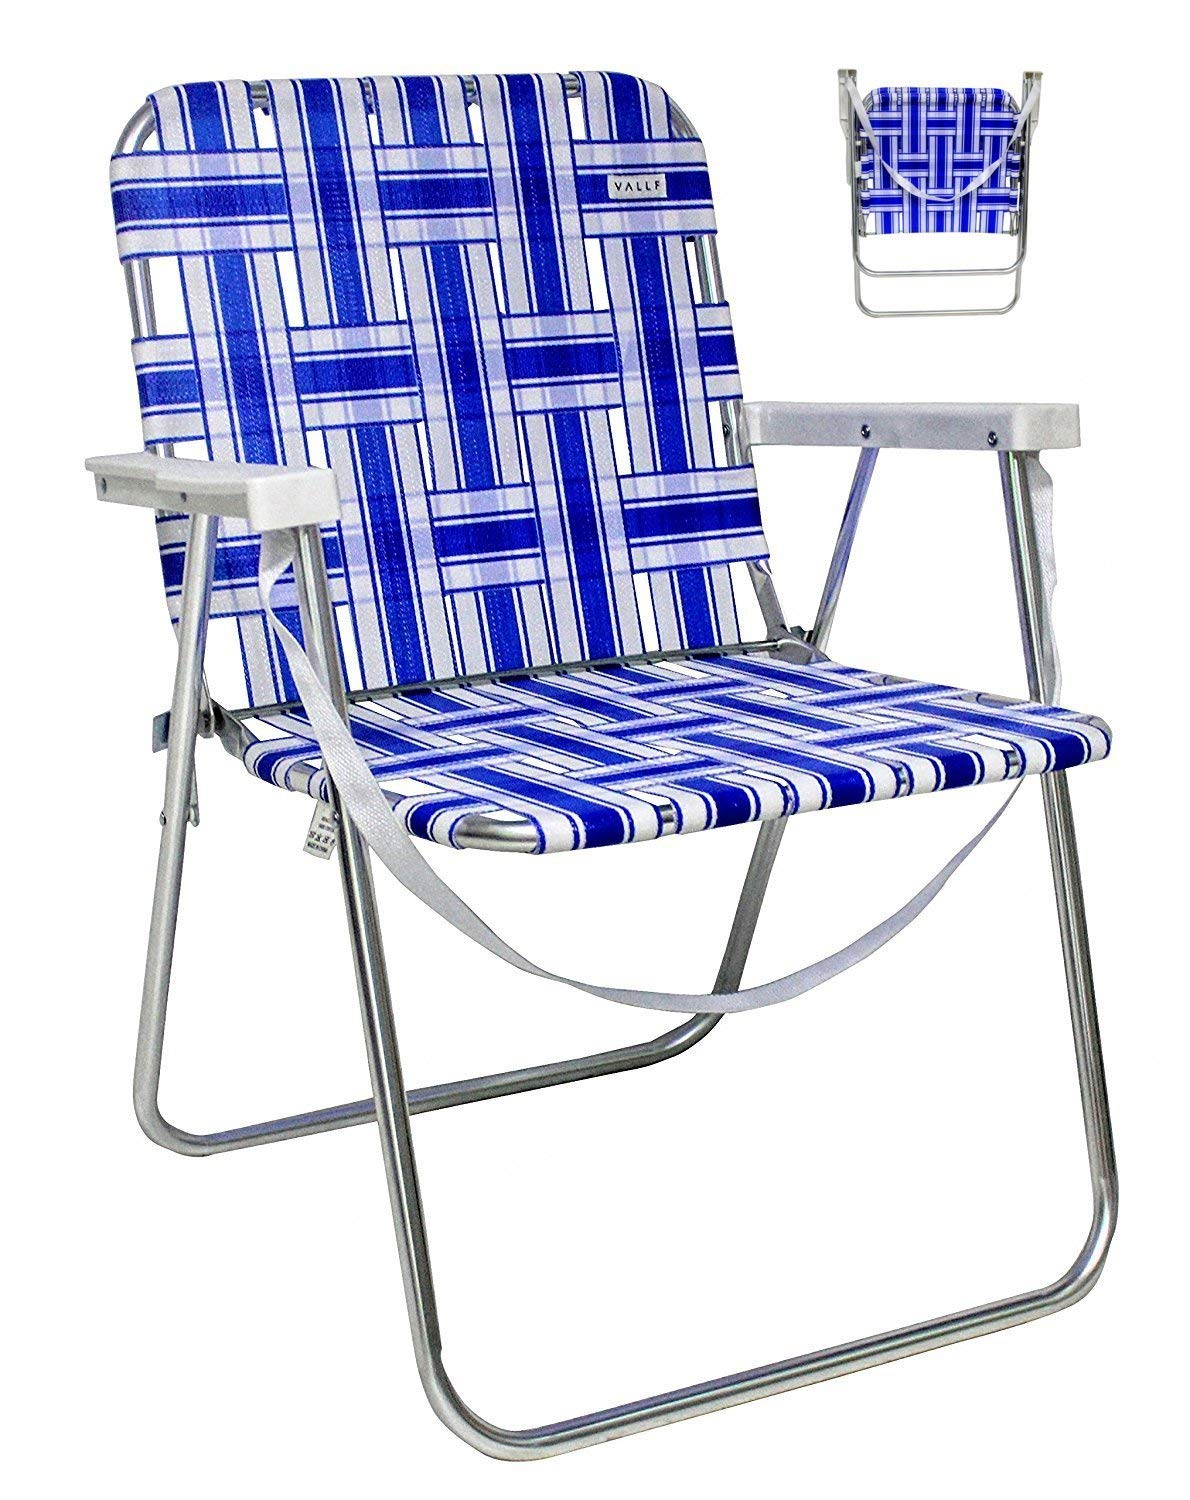 lightweight lawn chairs unusual outdoor cheap aluminum folding find get quotations vallf beach camping web chair with shoulder strap assorted colors